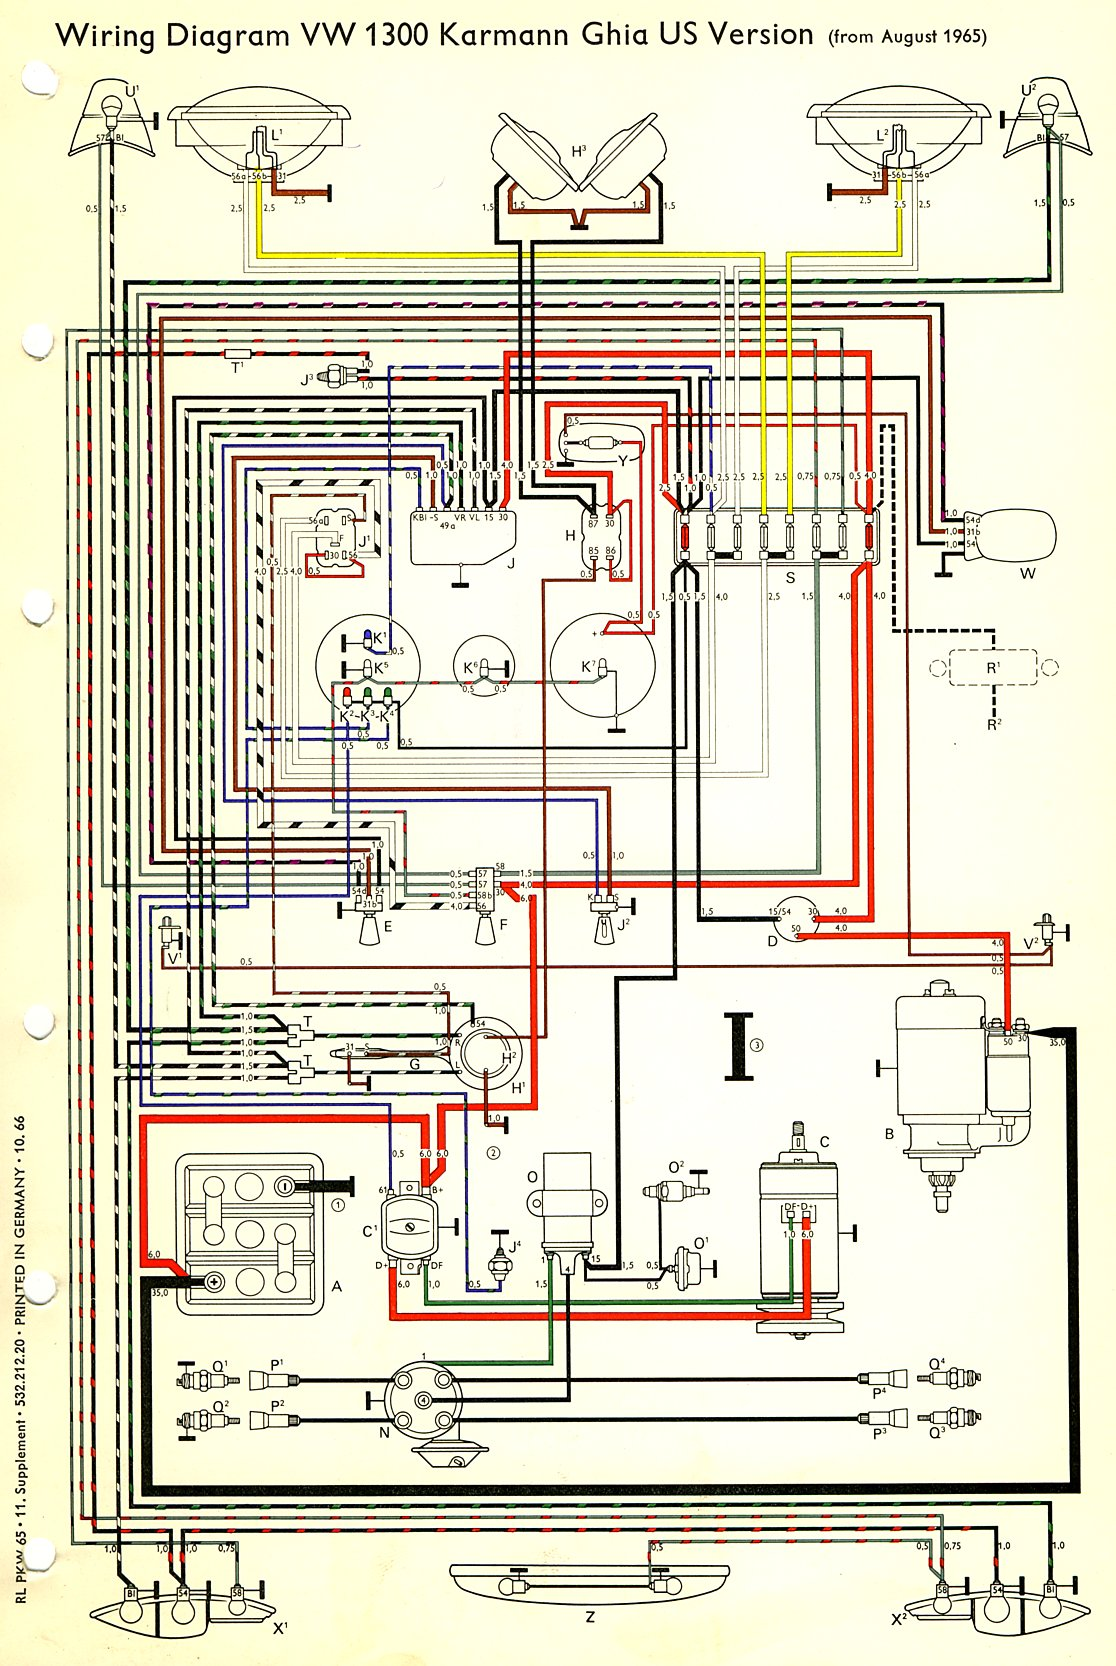 ghia_66_USA thesamba com karmann ghia wiring diagrams 1937 ford wiring diagram at crackthecode.co